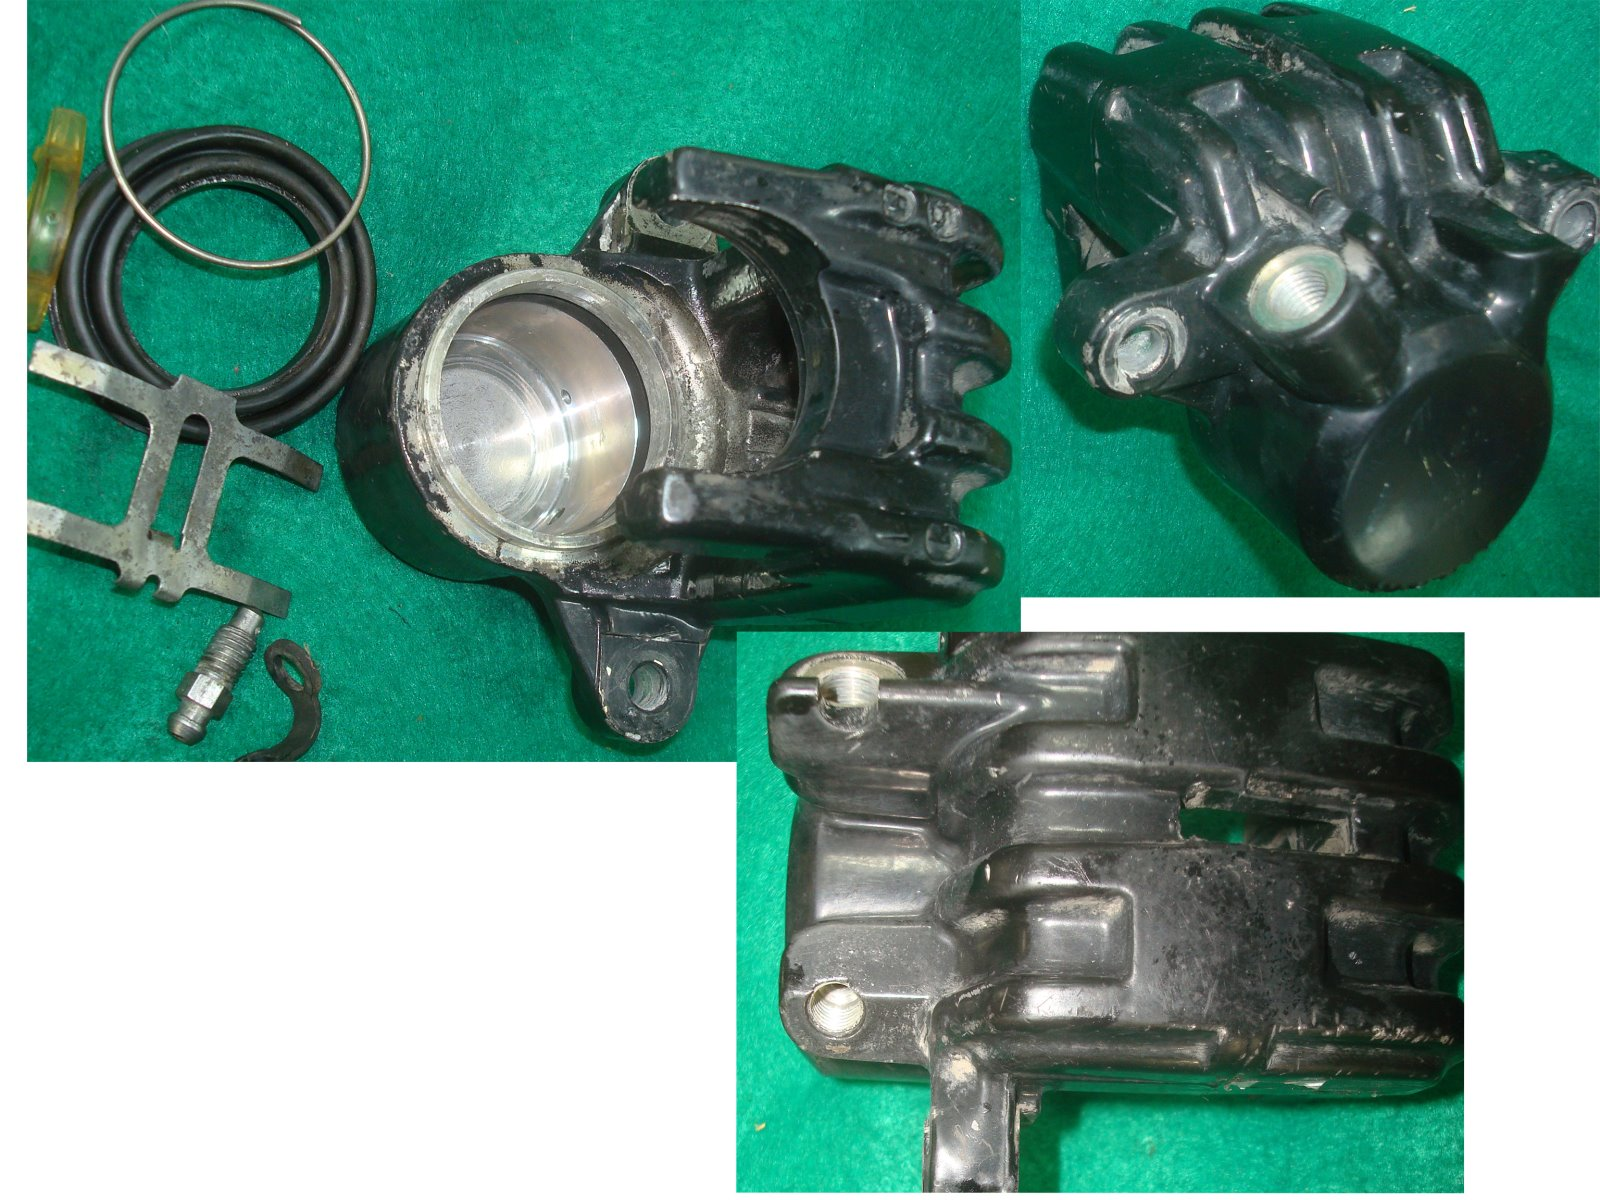 GL1500C/CT 97 to 03 Passenger bar, with pad.